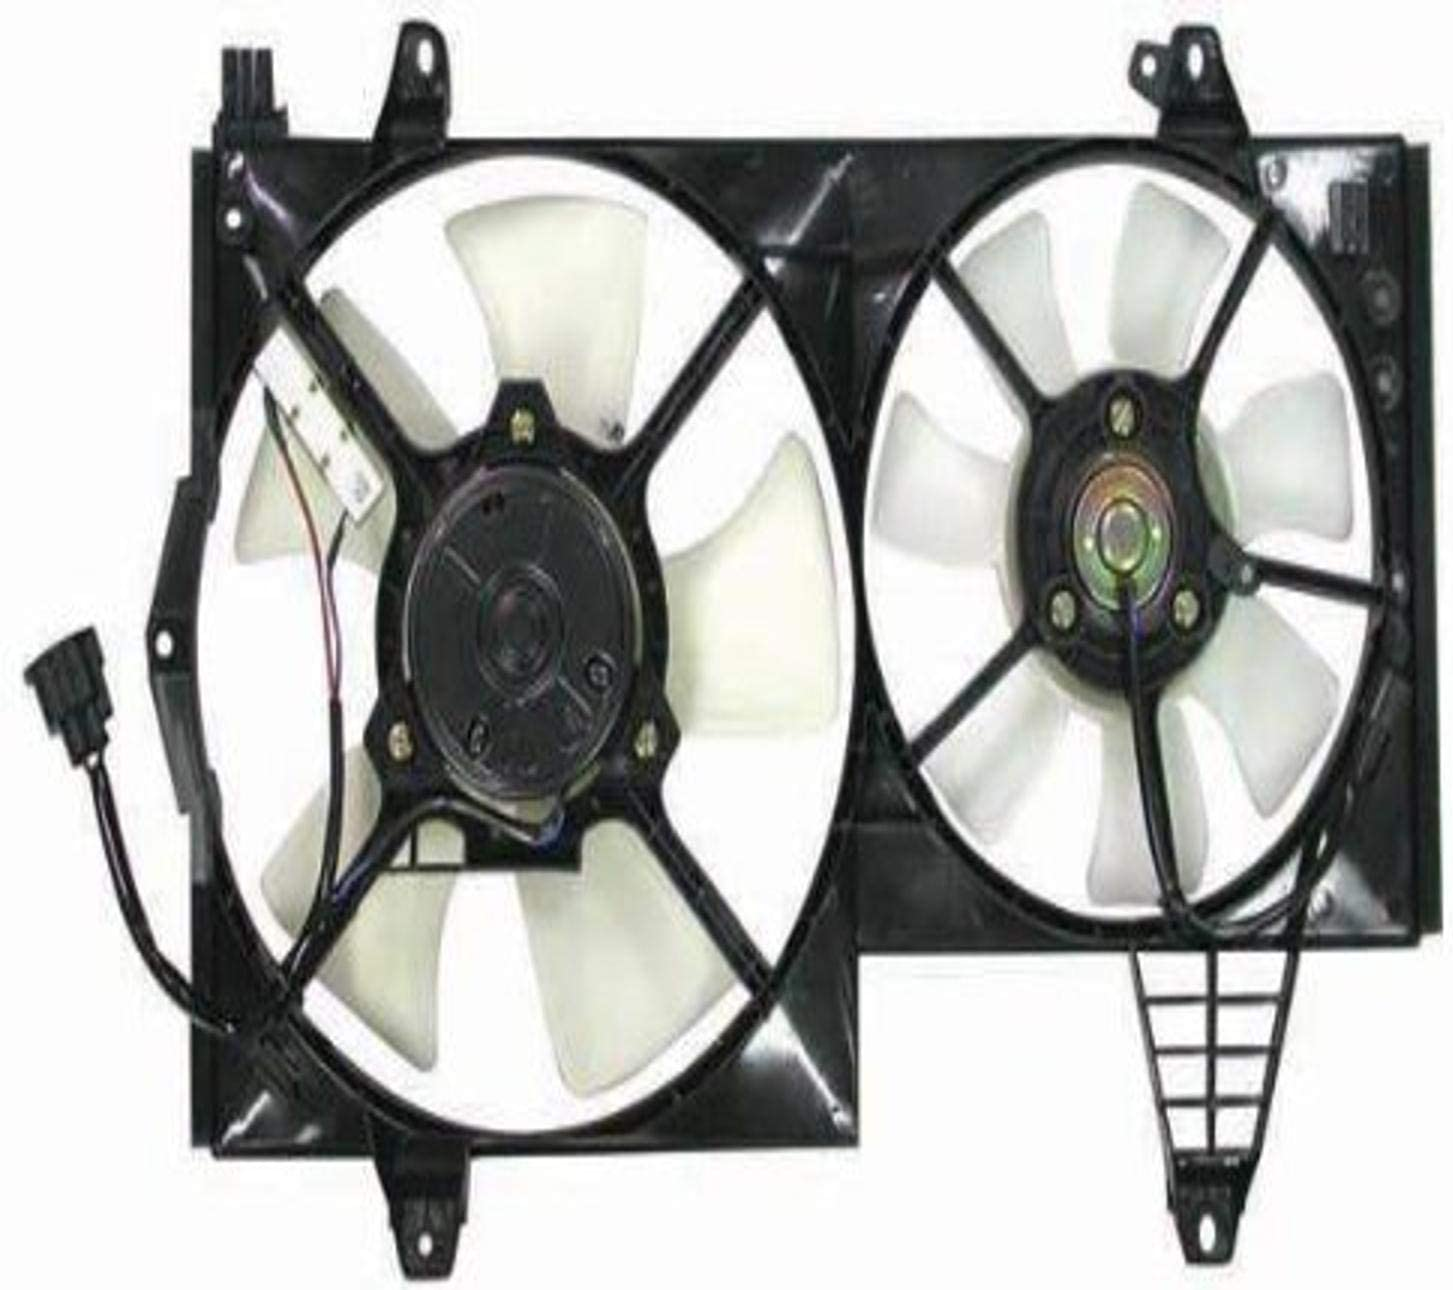 DEPO 373-55004-000 Replacement Engine Special price for Online limited product a limited time Cooling Fan Assembly This